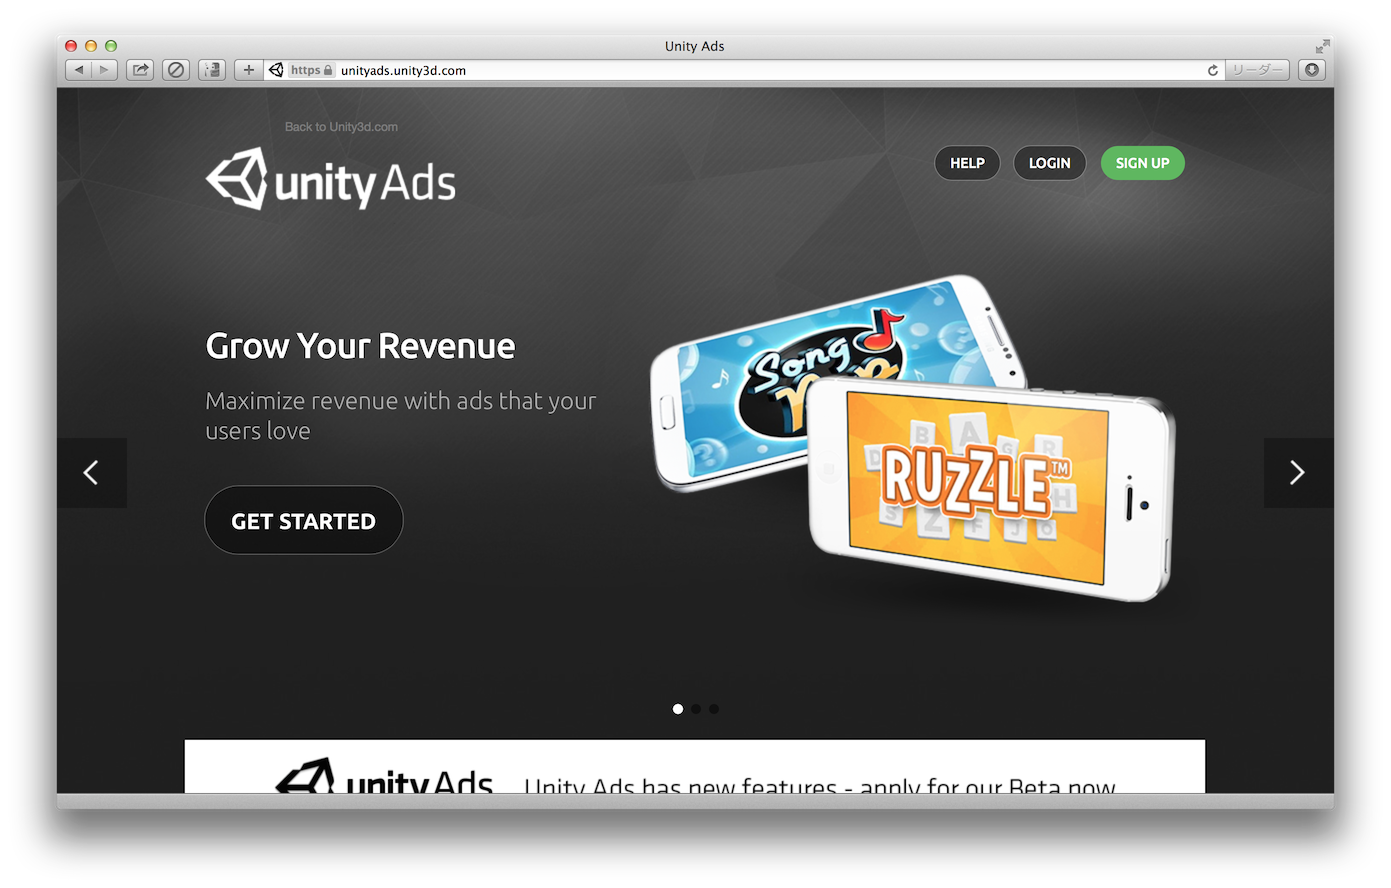 unity2015-01-27 10.56.07.png